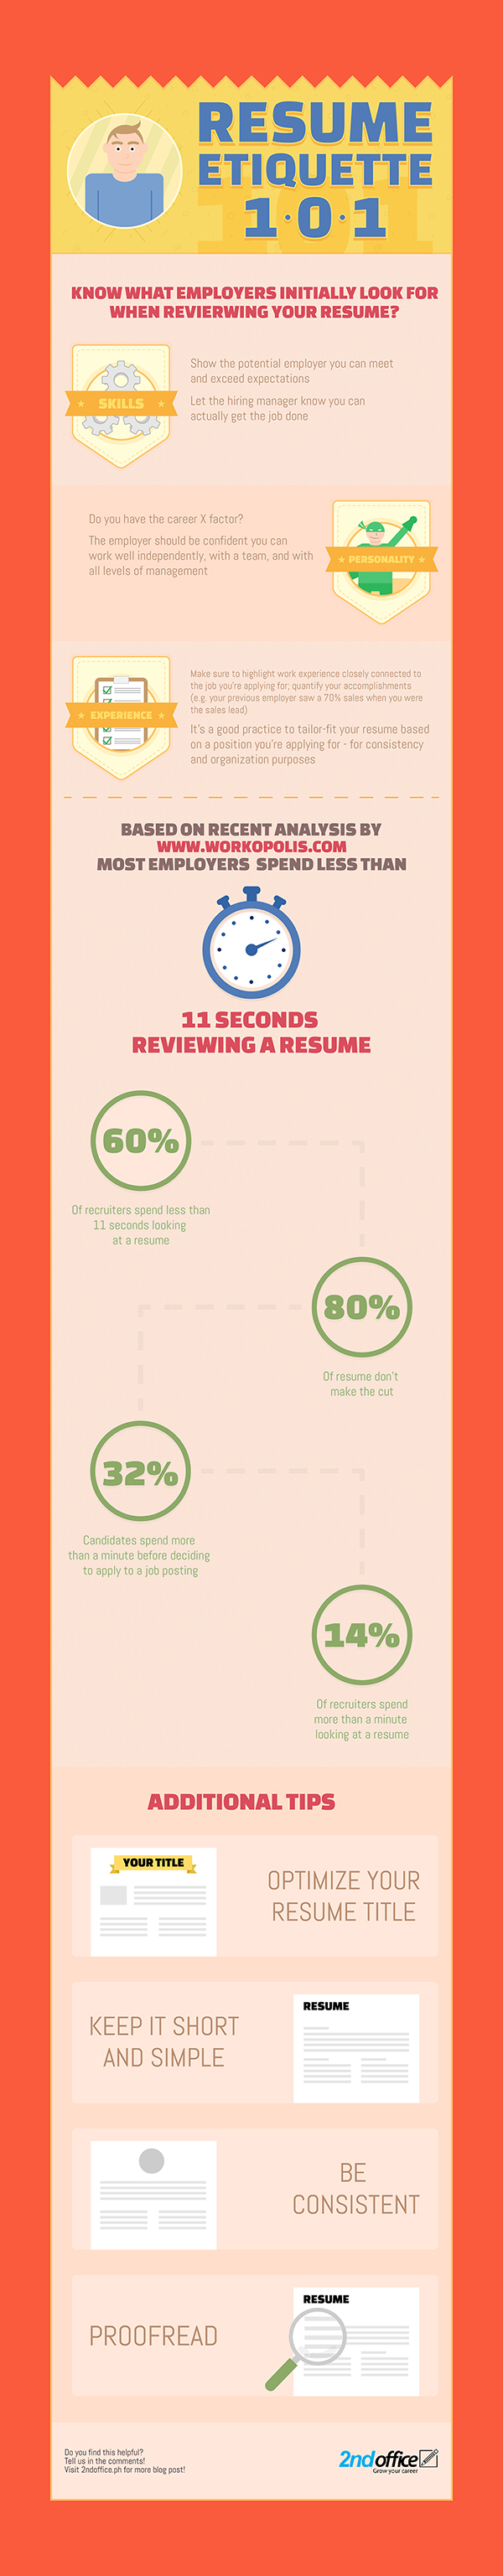 2nd Office Resume Etiquette Image